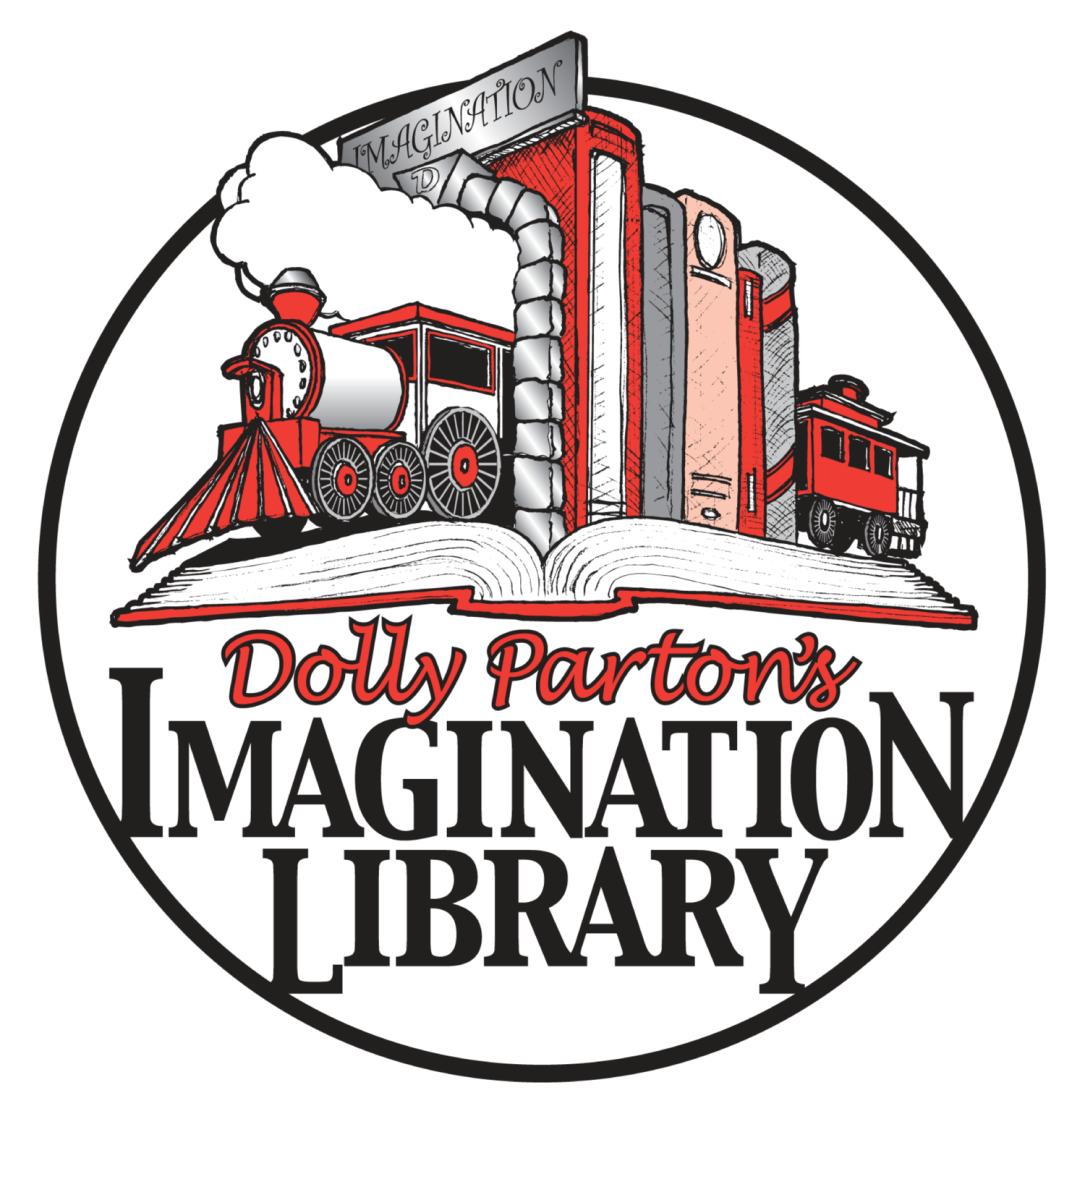 Dolly Parton's Imagination Library logo.